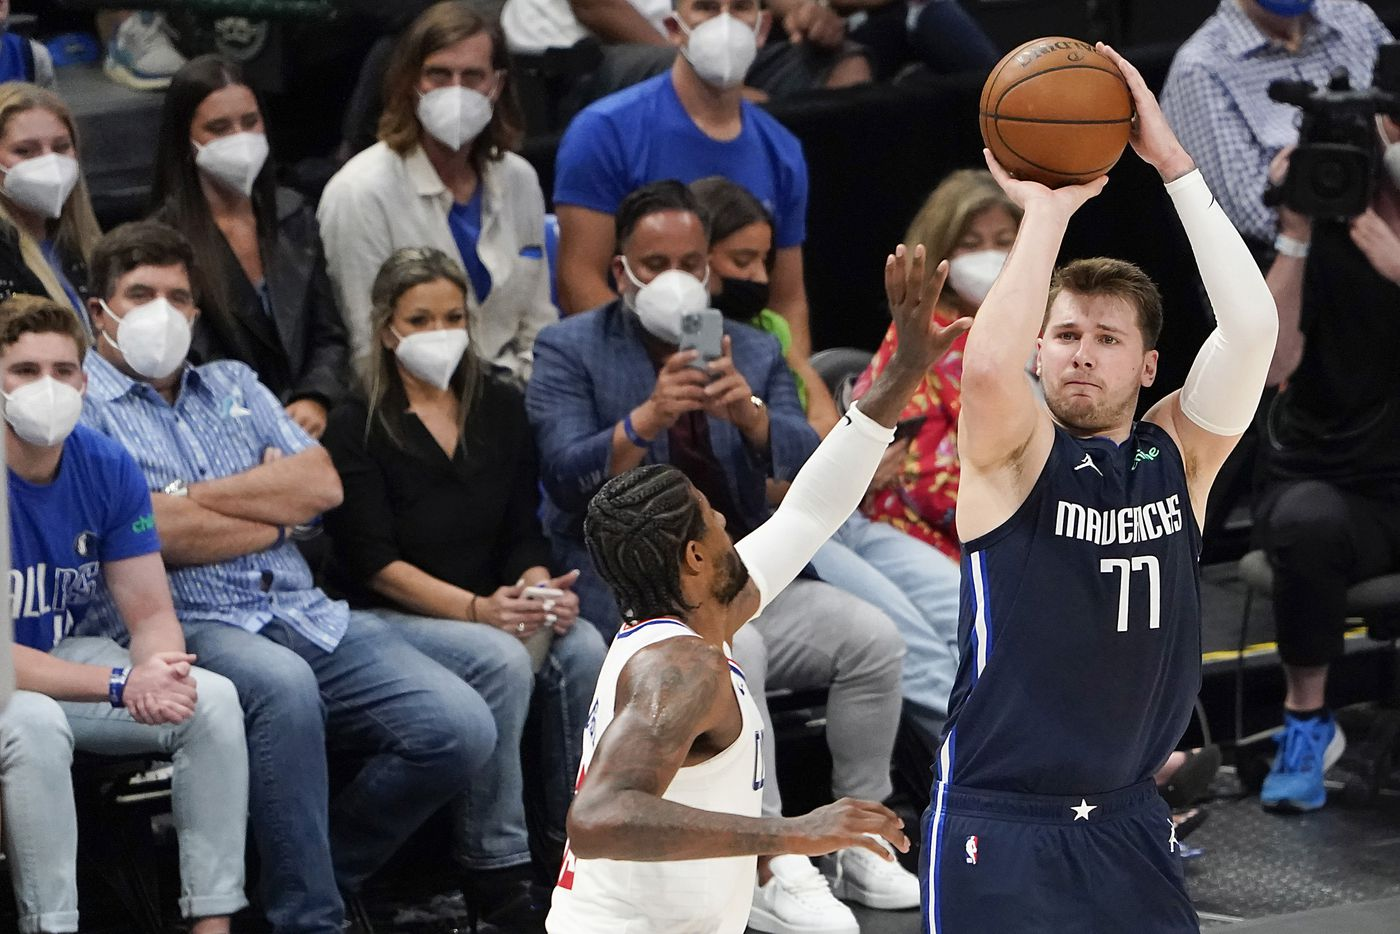 Dallas Mavericks guard Luka Doncic (77) shoots over LA Clippers guard Paul George (13) during the second quarter of an NBA playoff basketball game at American Airlines Center on Friday, May 28, 2021, in Dallas.